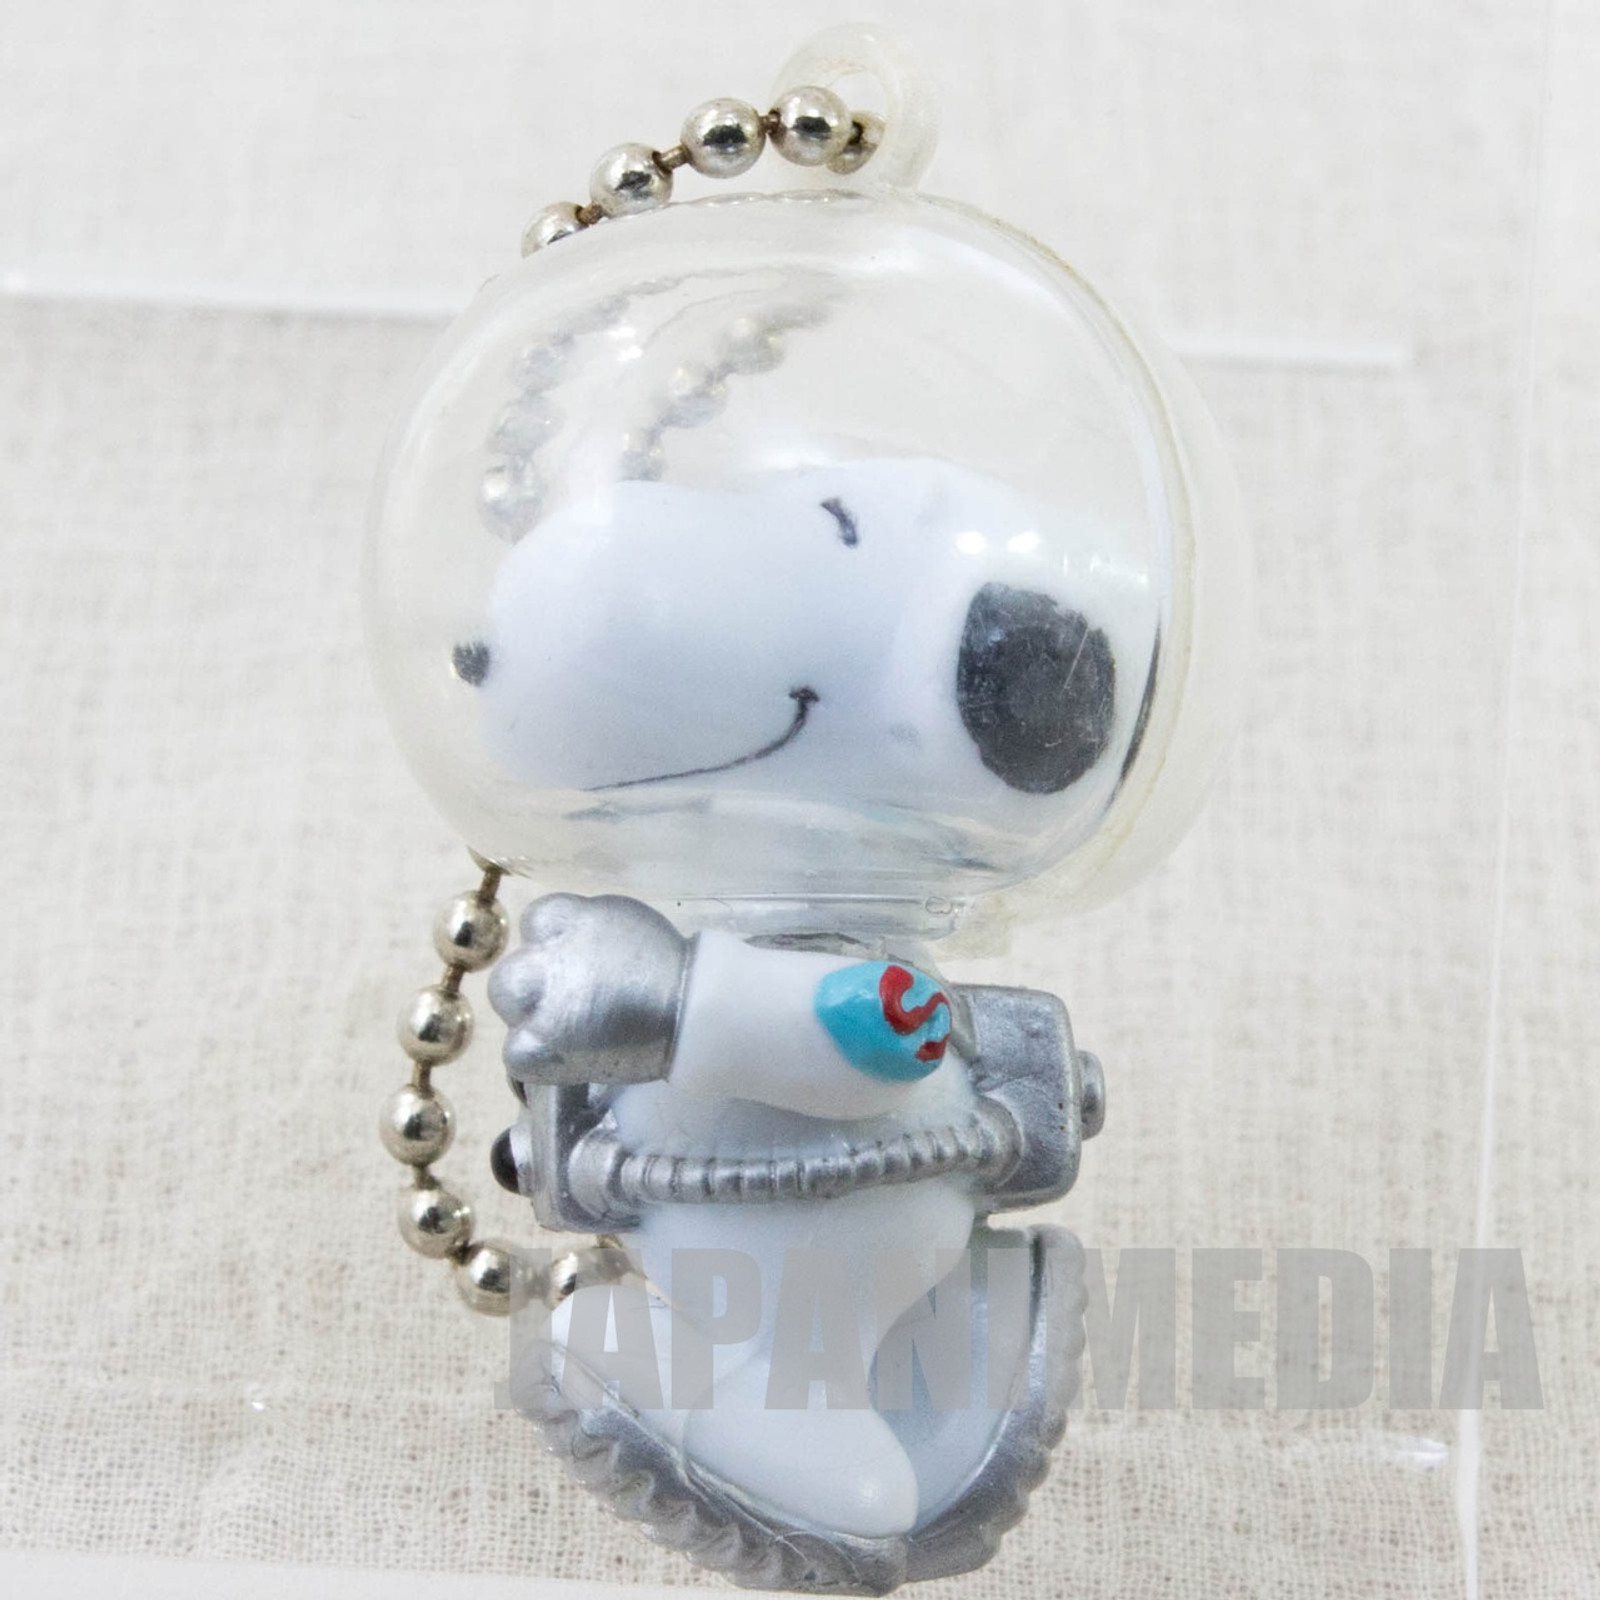 Snoopy Astronauts Figure Ball Key Chain Toy Figure JAPAN PEANUTS #1